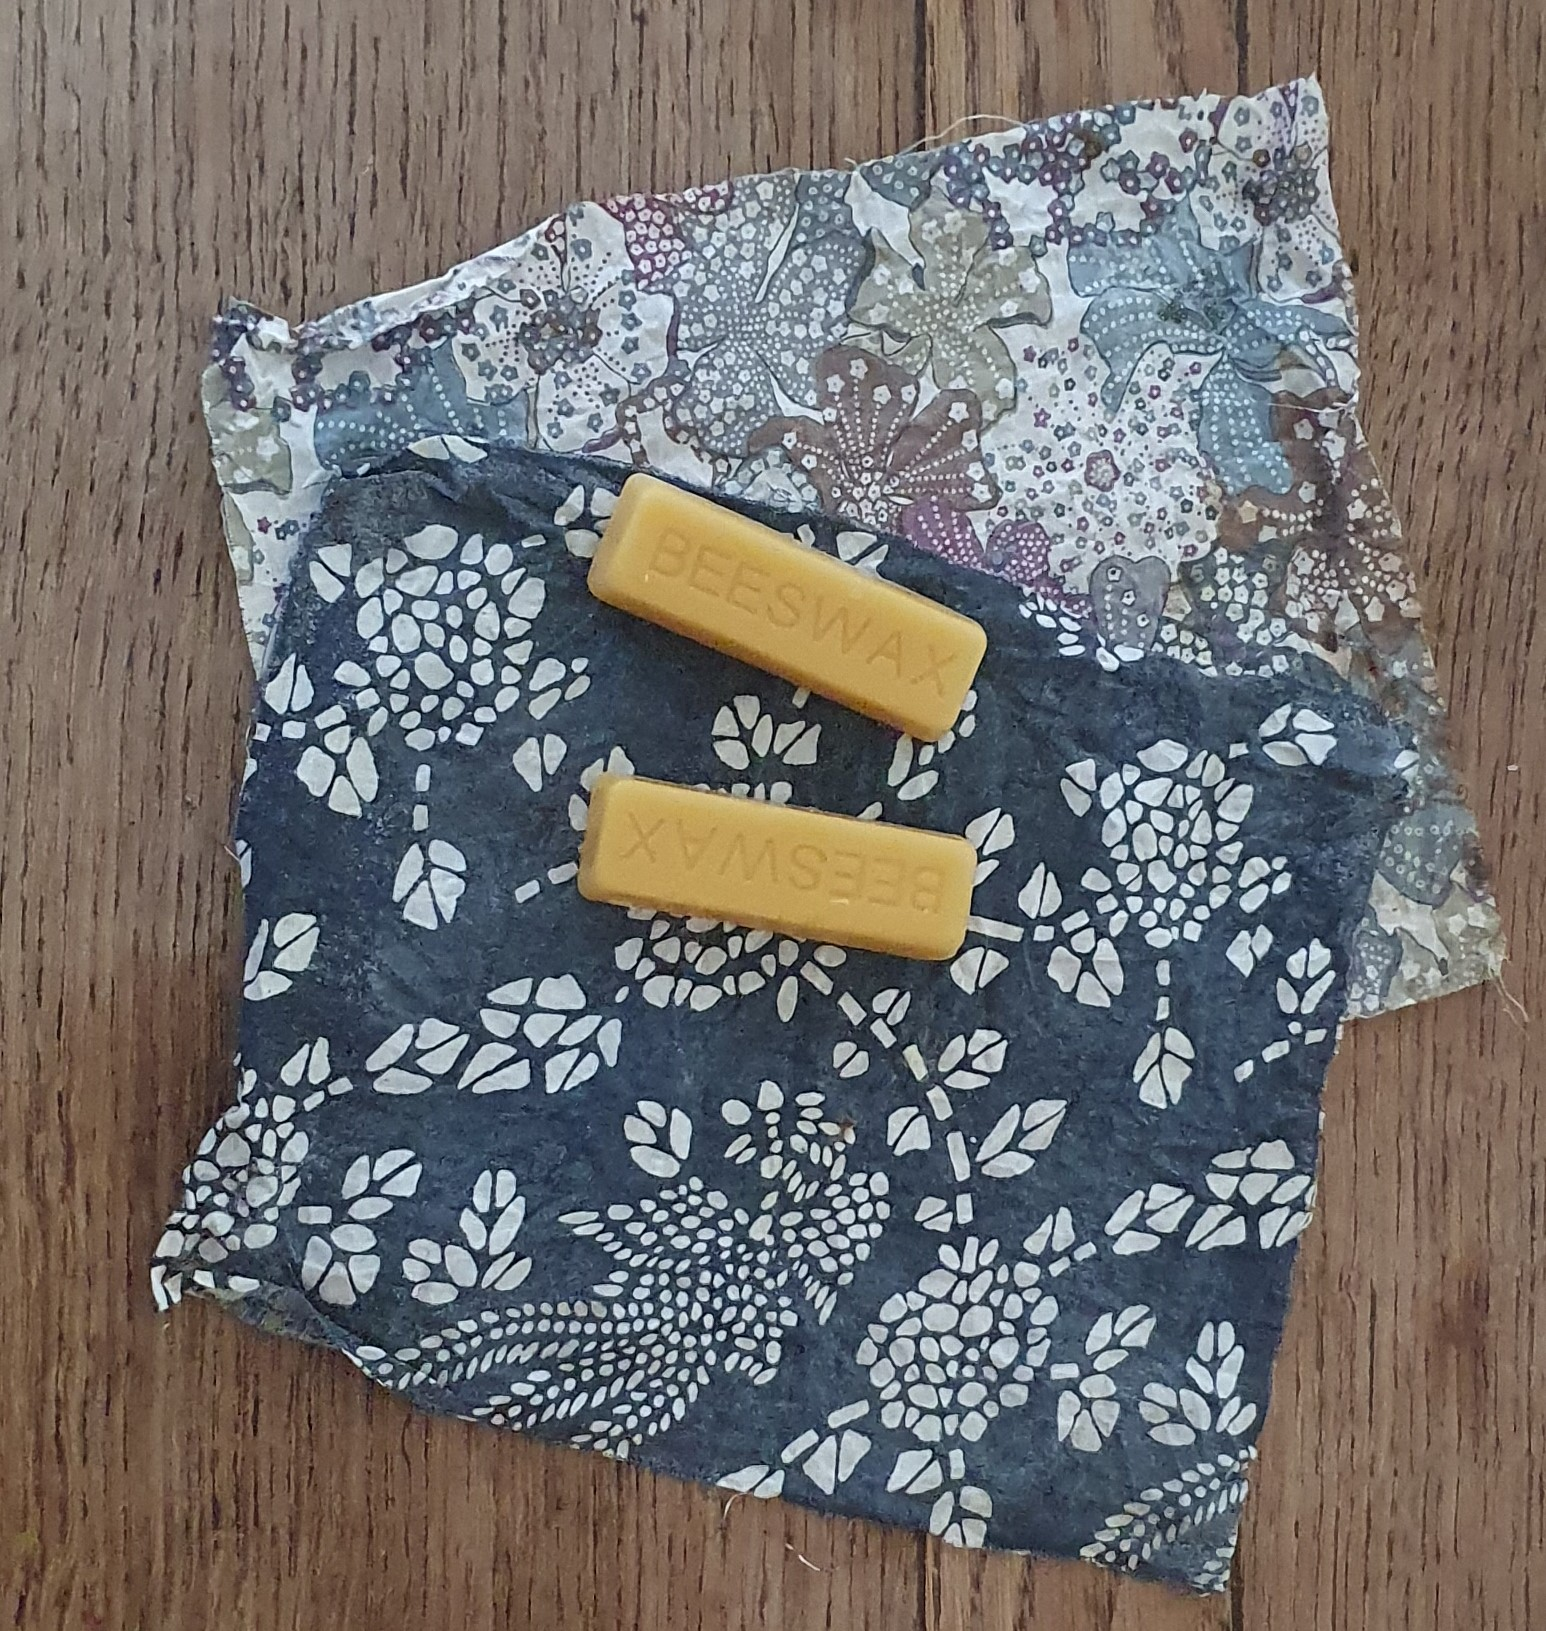 Beeswax blocks on top of cotton cloths